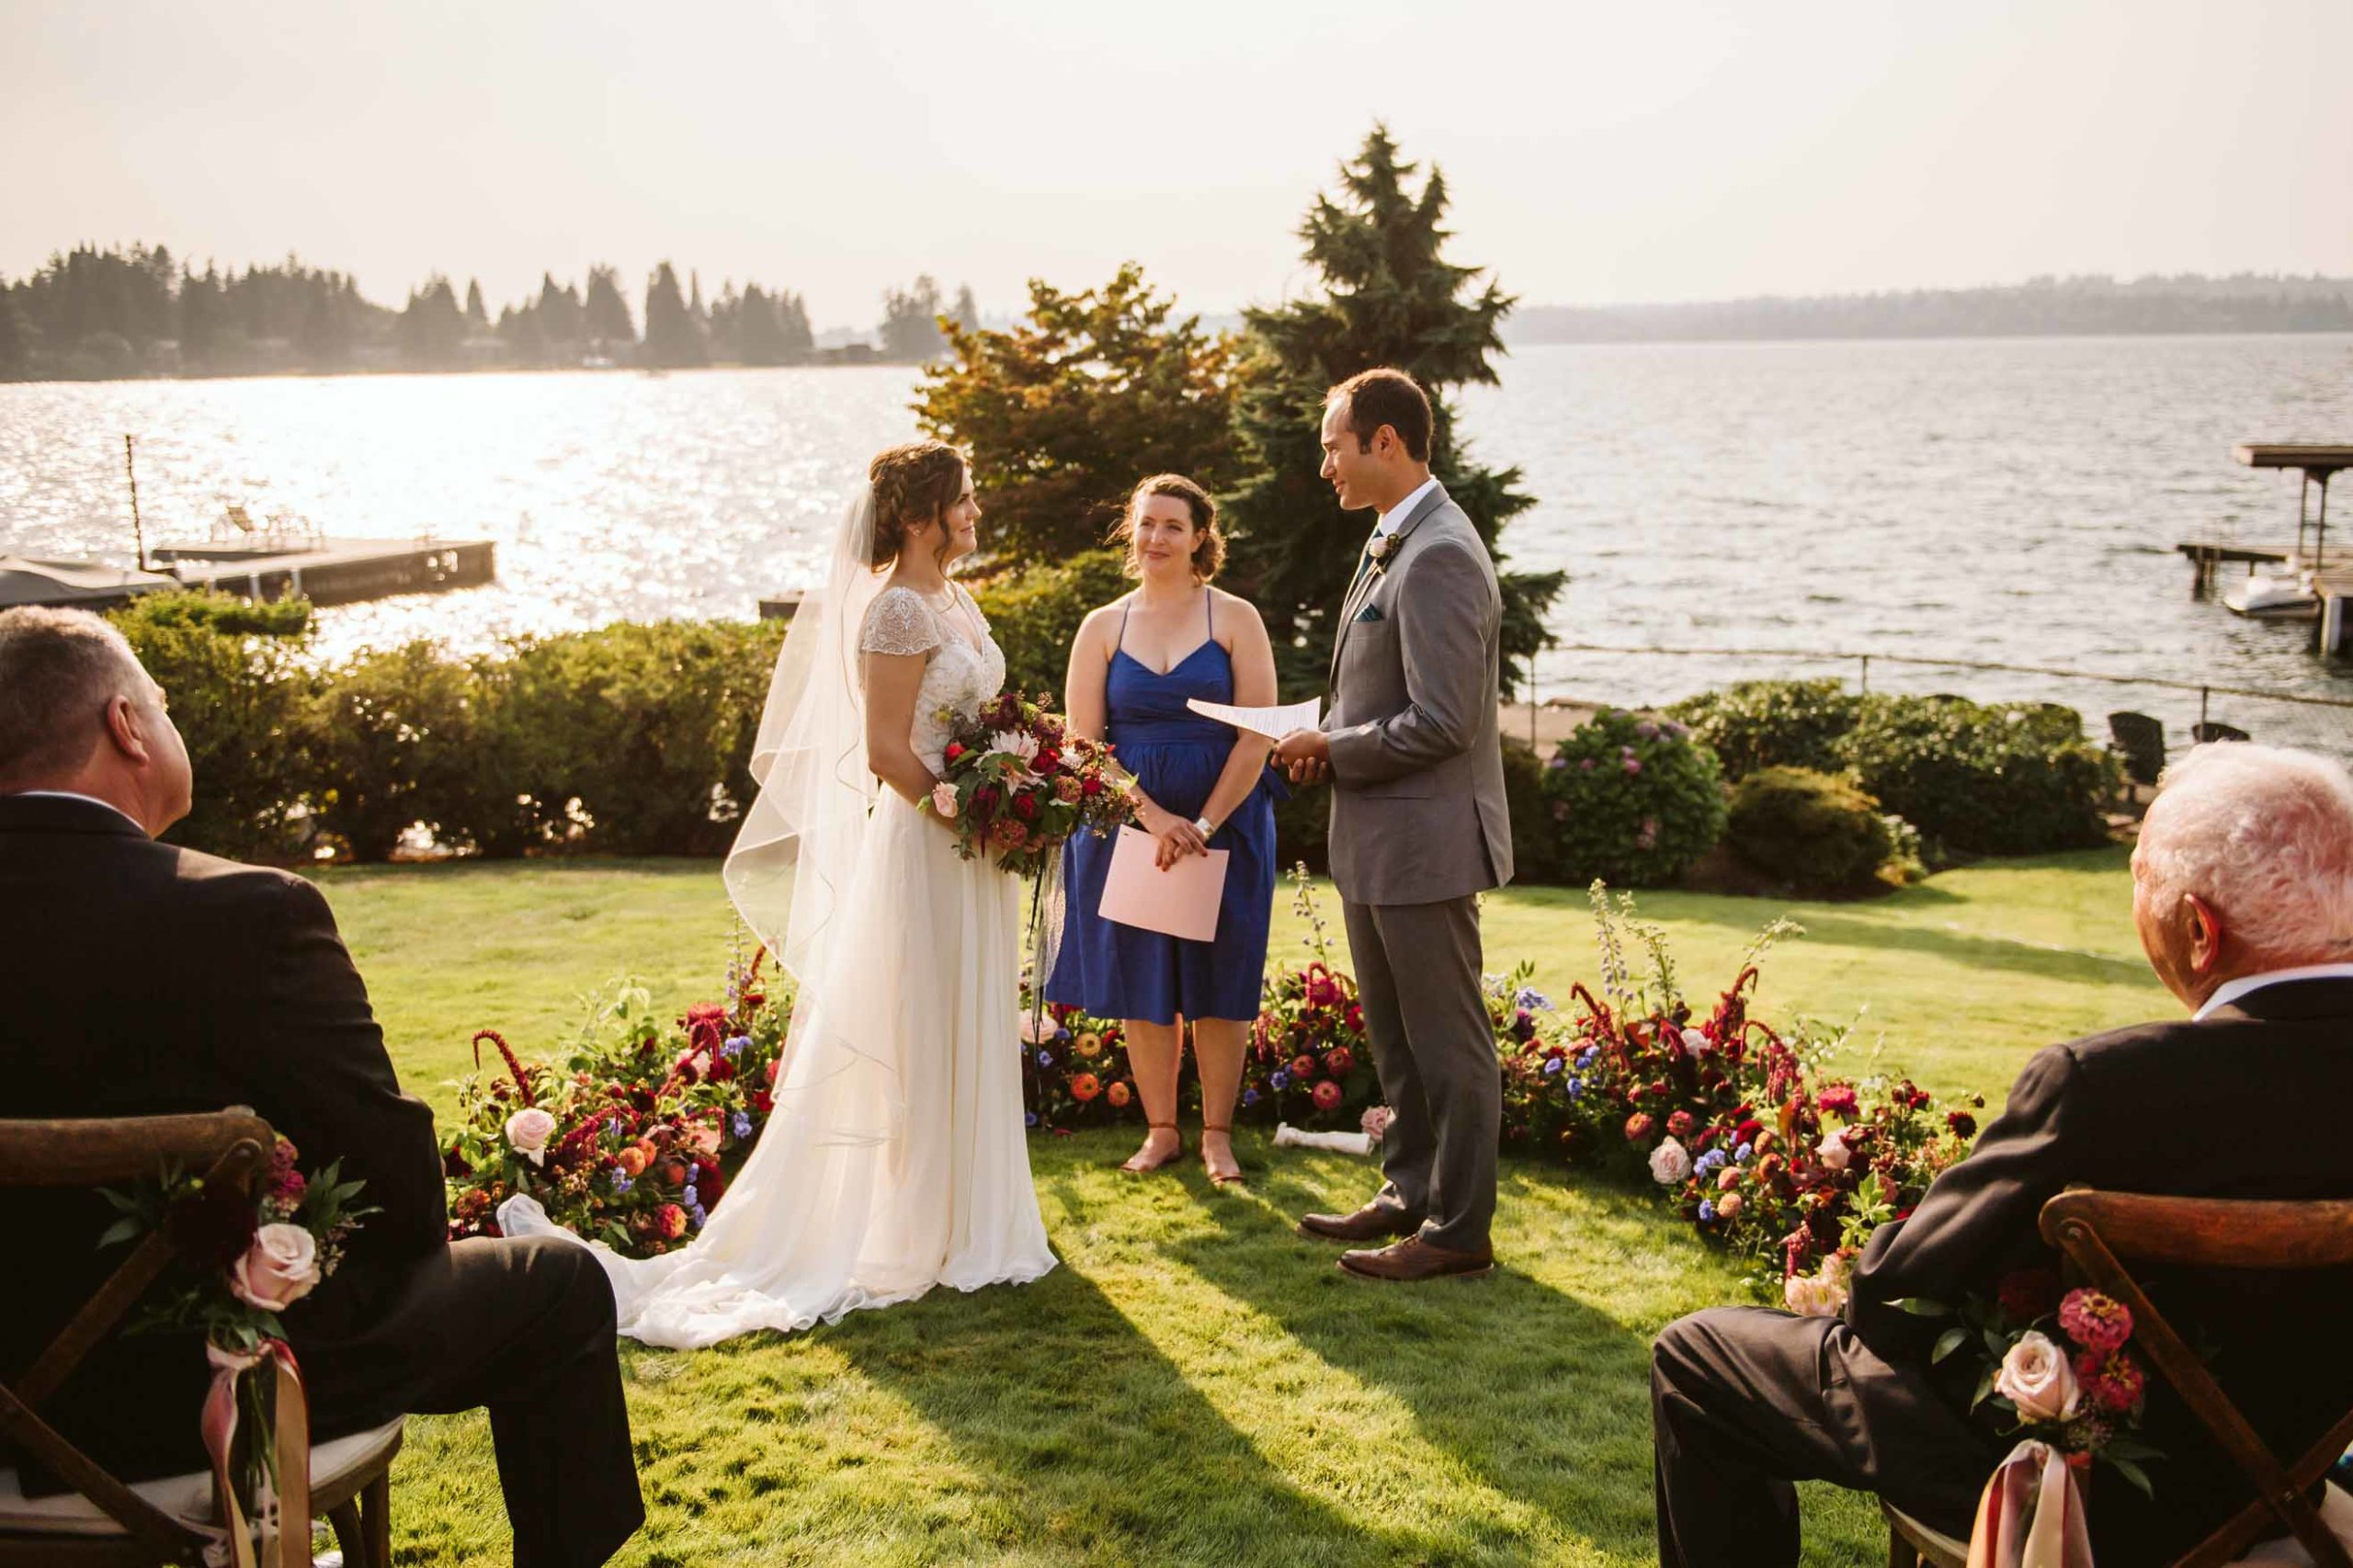 Grounded floral arch of lush burgundy and blush summer flowers with pops of blue for a summer outdoor Lake Washington Wedding | Flora Nova Design Seattle